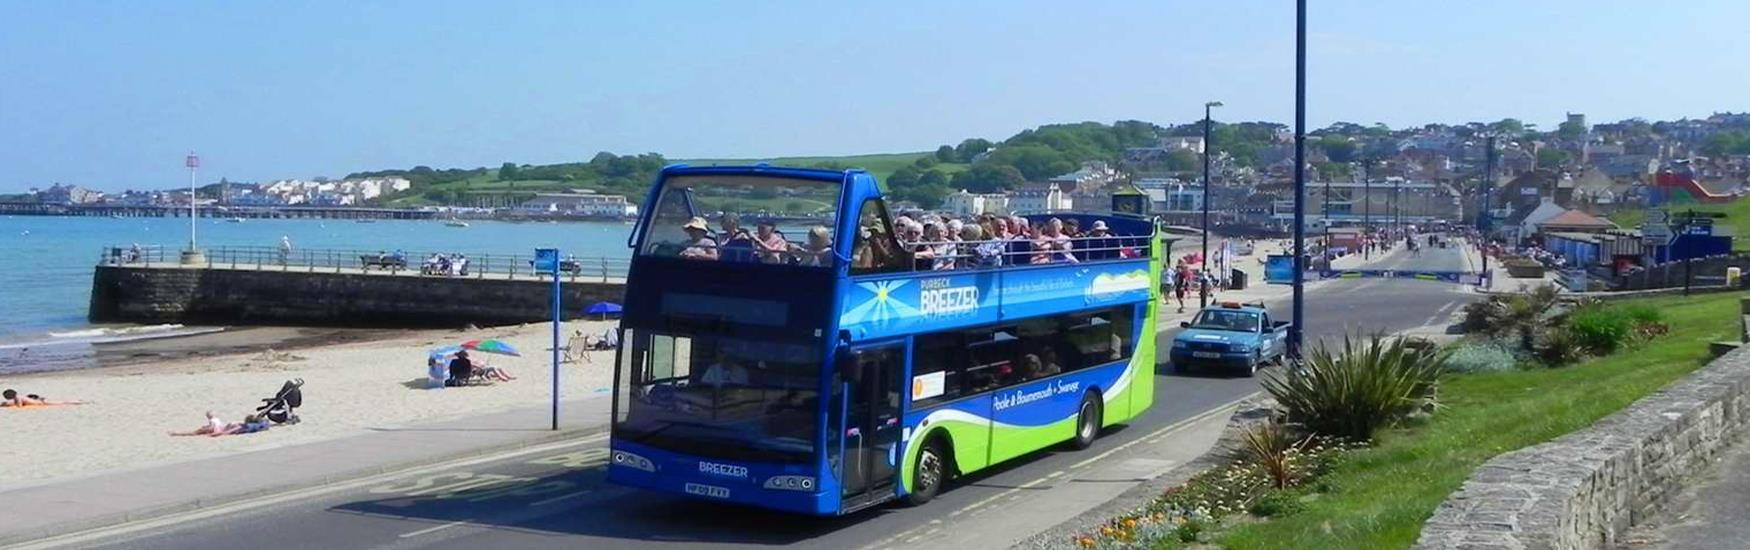 Take the open top to Swanage